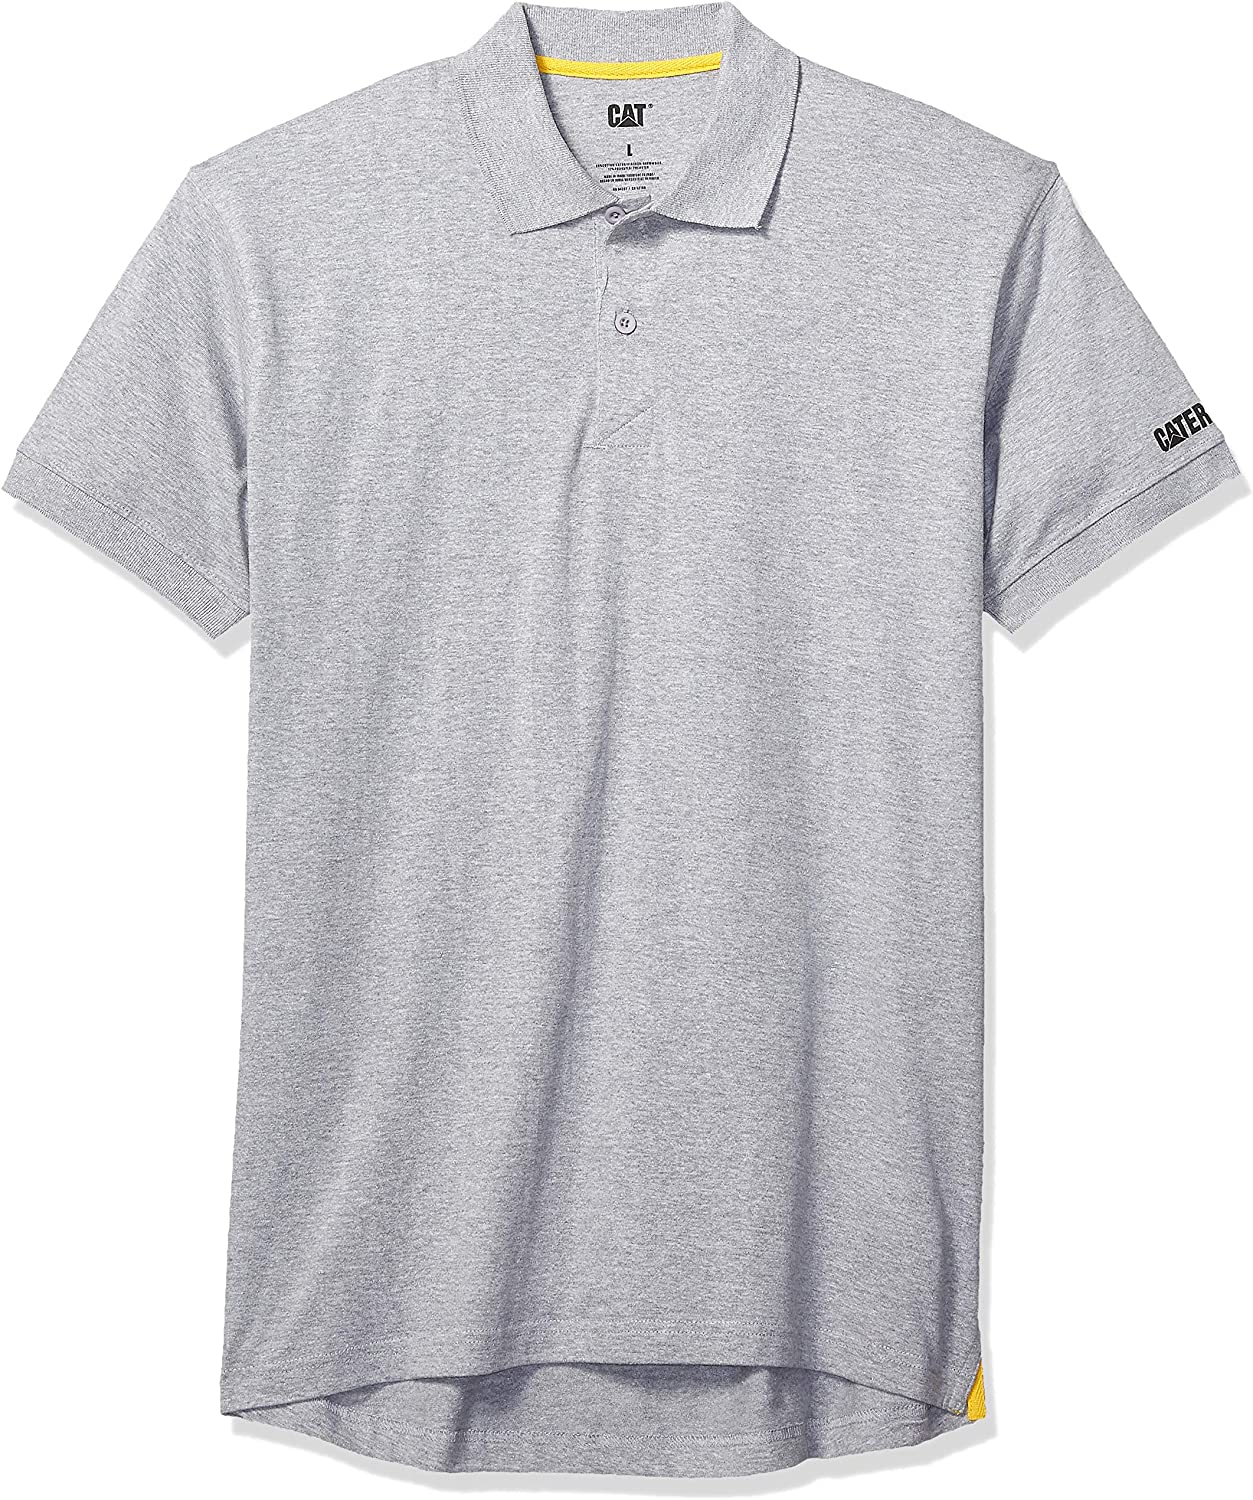 Caterpillar Max 65% OFF Limited price Men's Classic Cotton Shirt Polo